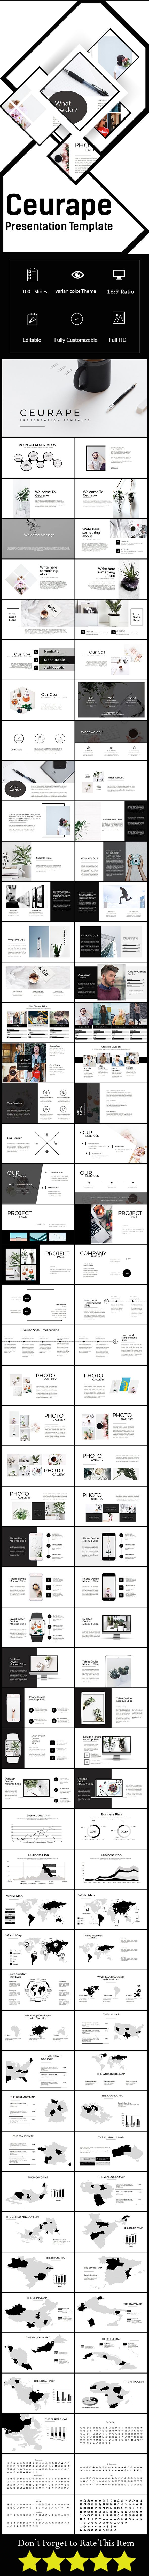 Ceurape Powerpoint Template Ceurape Powerpoint Templates  Drag And Drop image Images Placeholder Theme Colour Option, Easy to change colors, Fully editable text, photos, music & other elements Vector Icons, elements & PNG included in Files Clean Theme Version PPTX & PPT Files Animation Include Help File & Tutorial